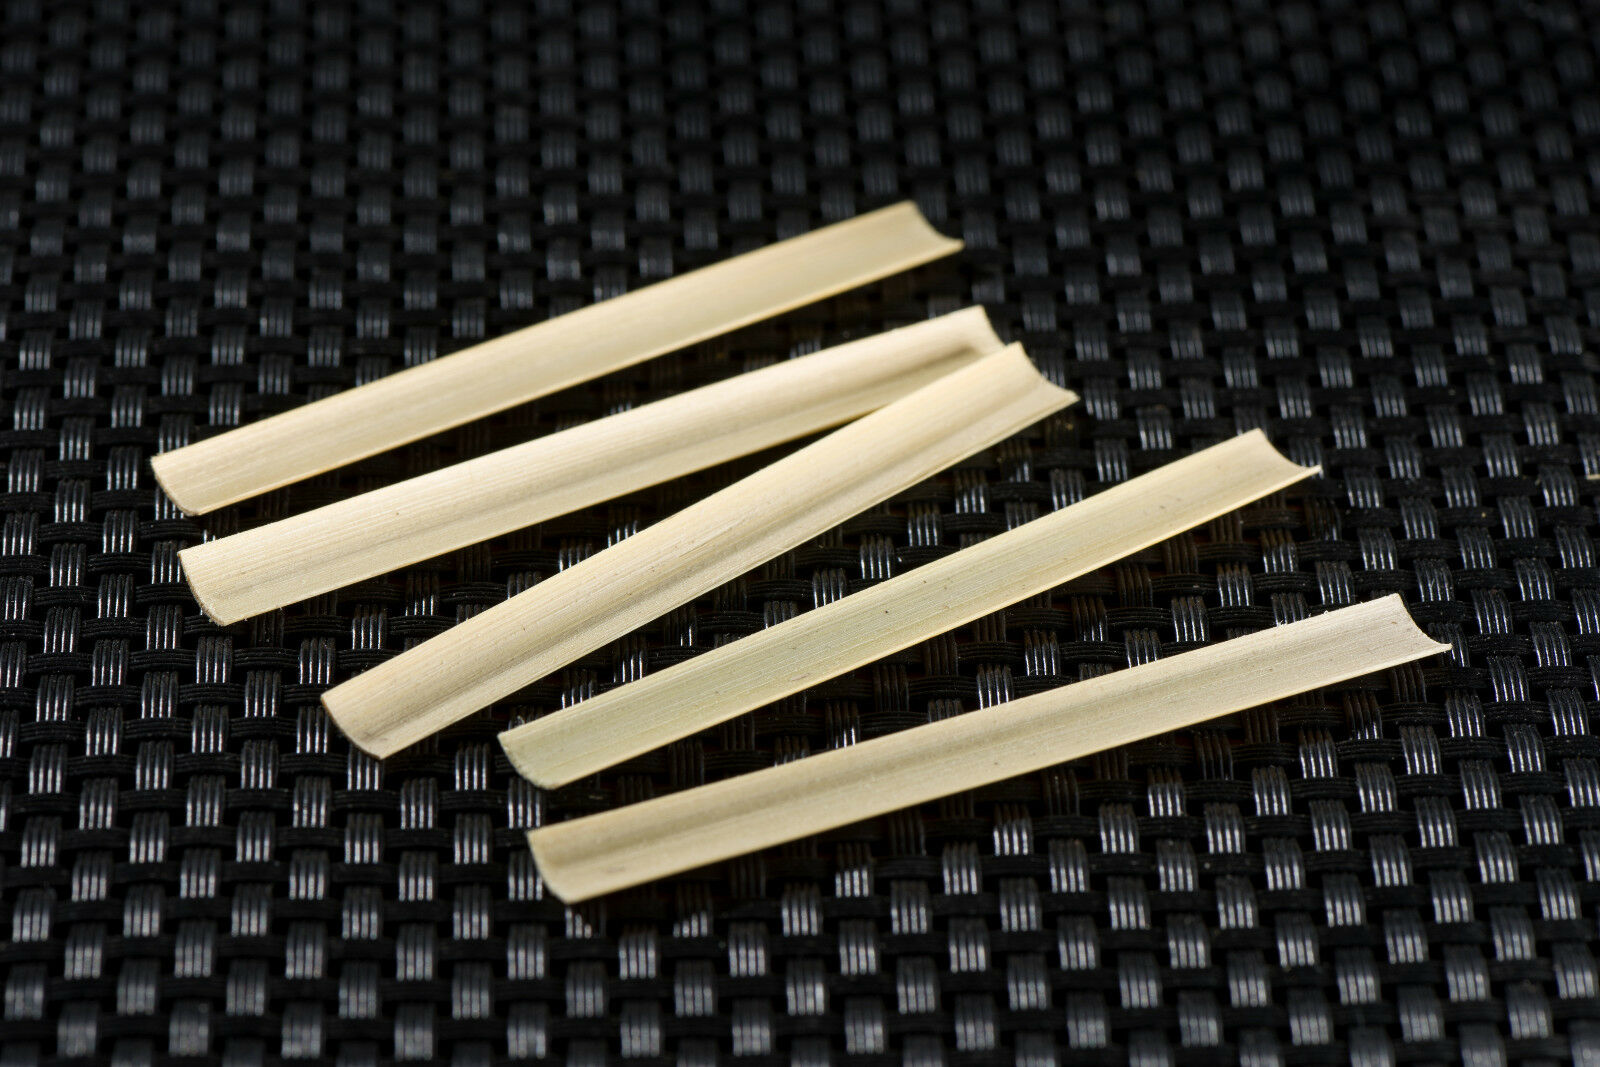 Reed Expression - Oboe Reeds Cane 50 pcs Gouged Only Unshaped